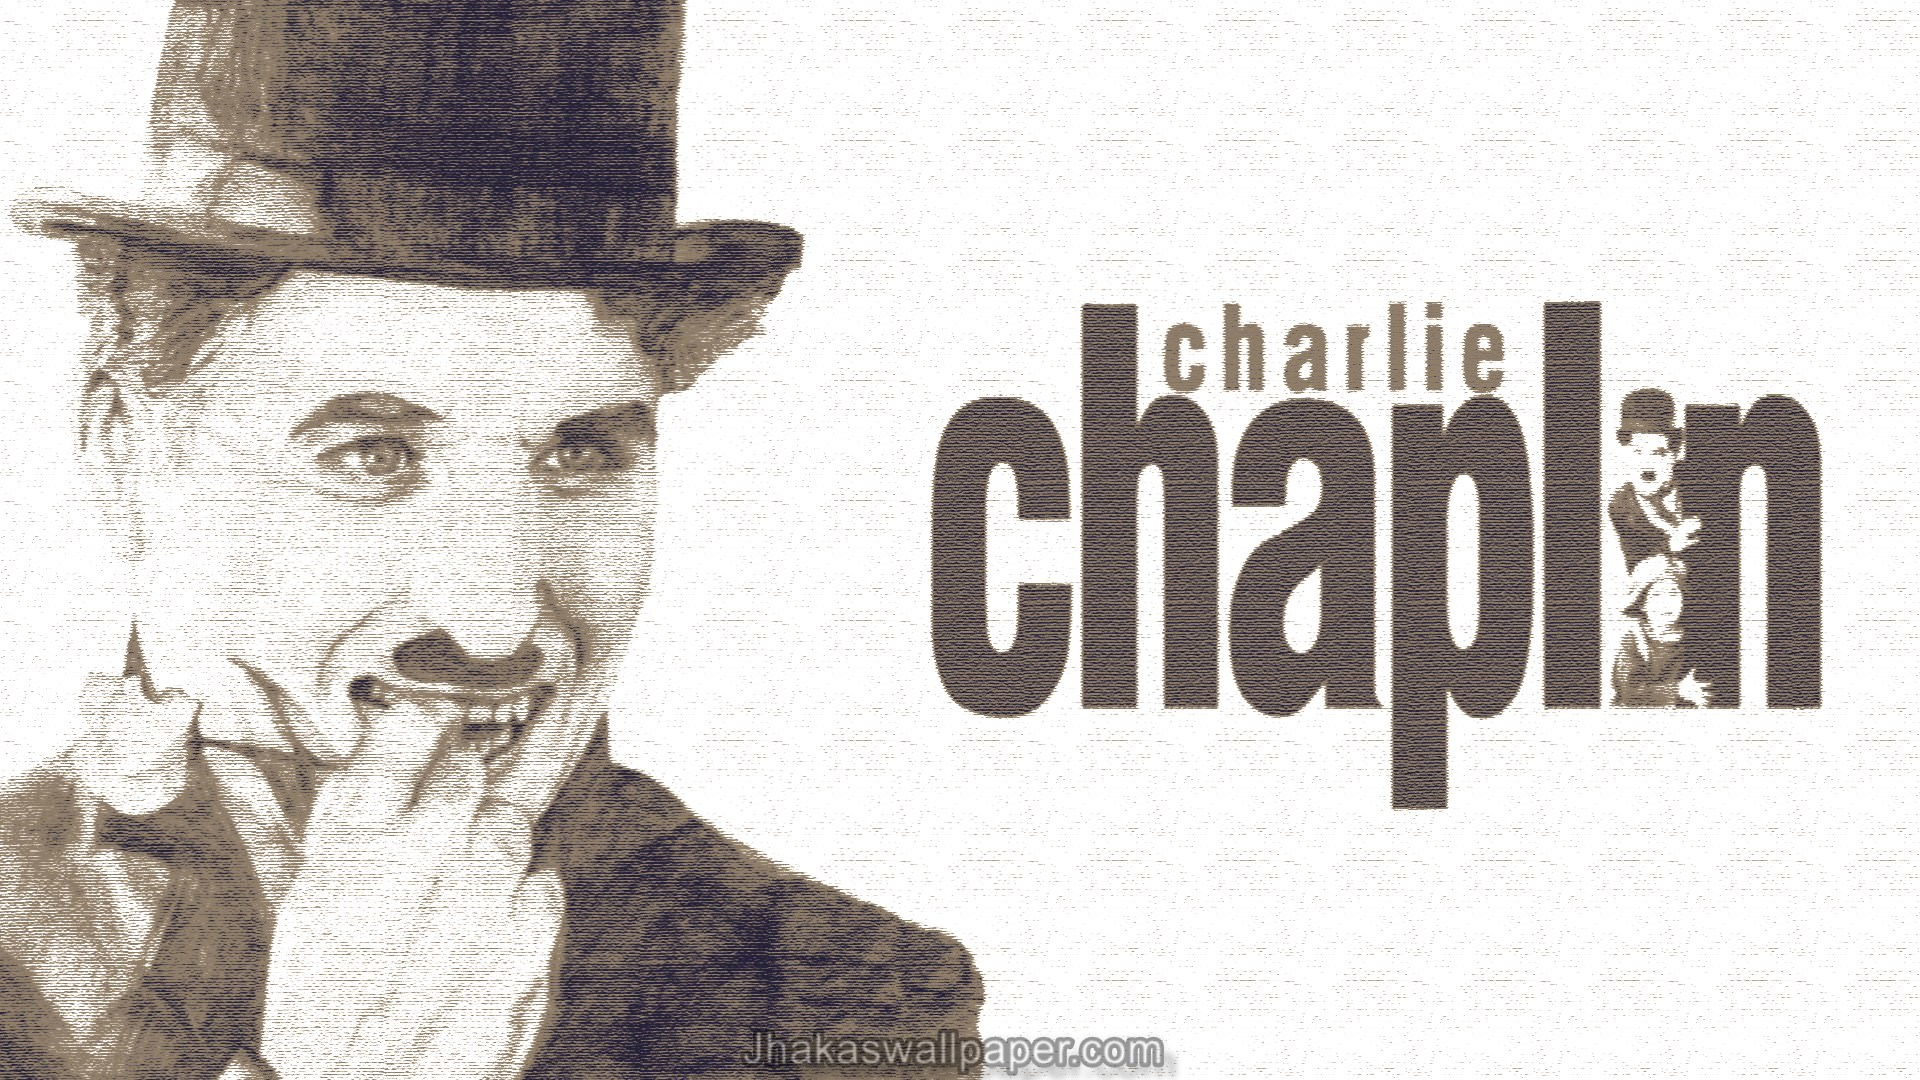 the life and humor of charlie chaplin Famous quotes by charlie chaplin, british actor, born 16th april, 1889, collection of charlie chaplin quotes and sayings, search quotations by charlie chaplin.